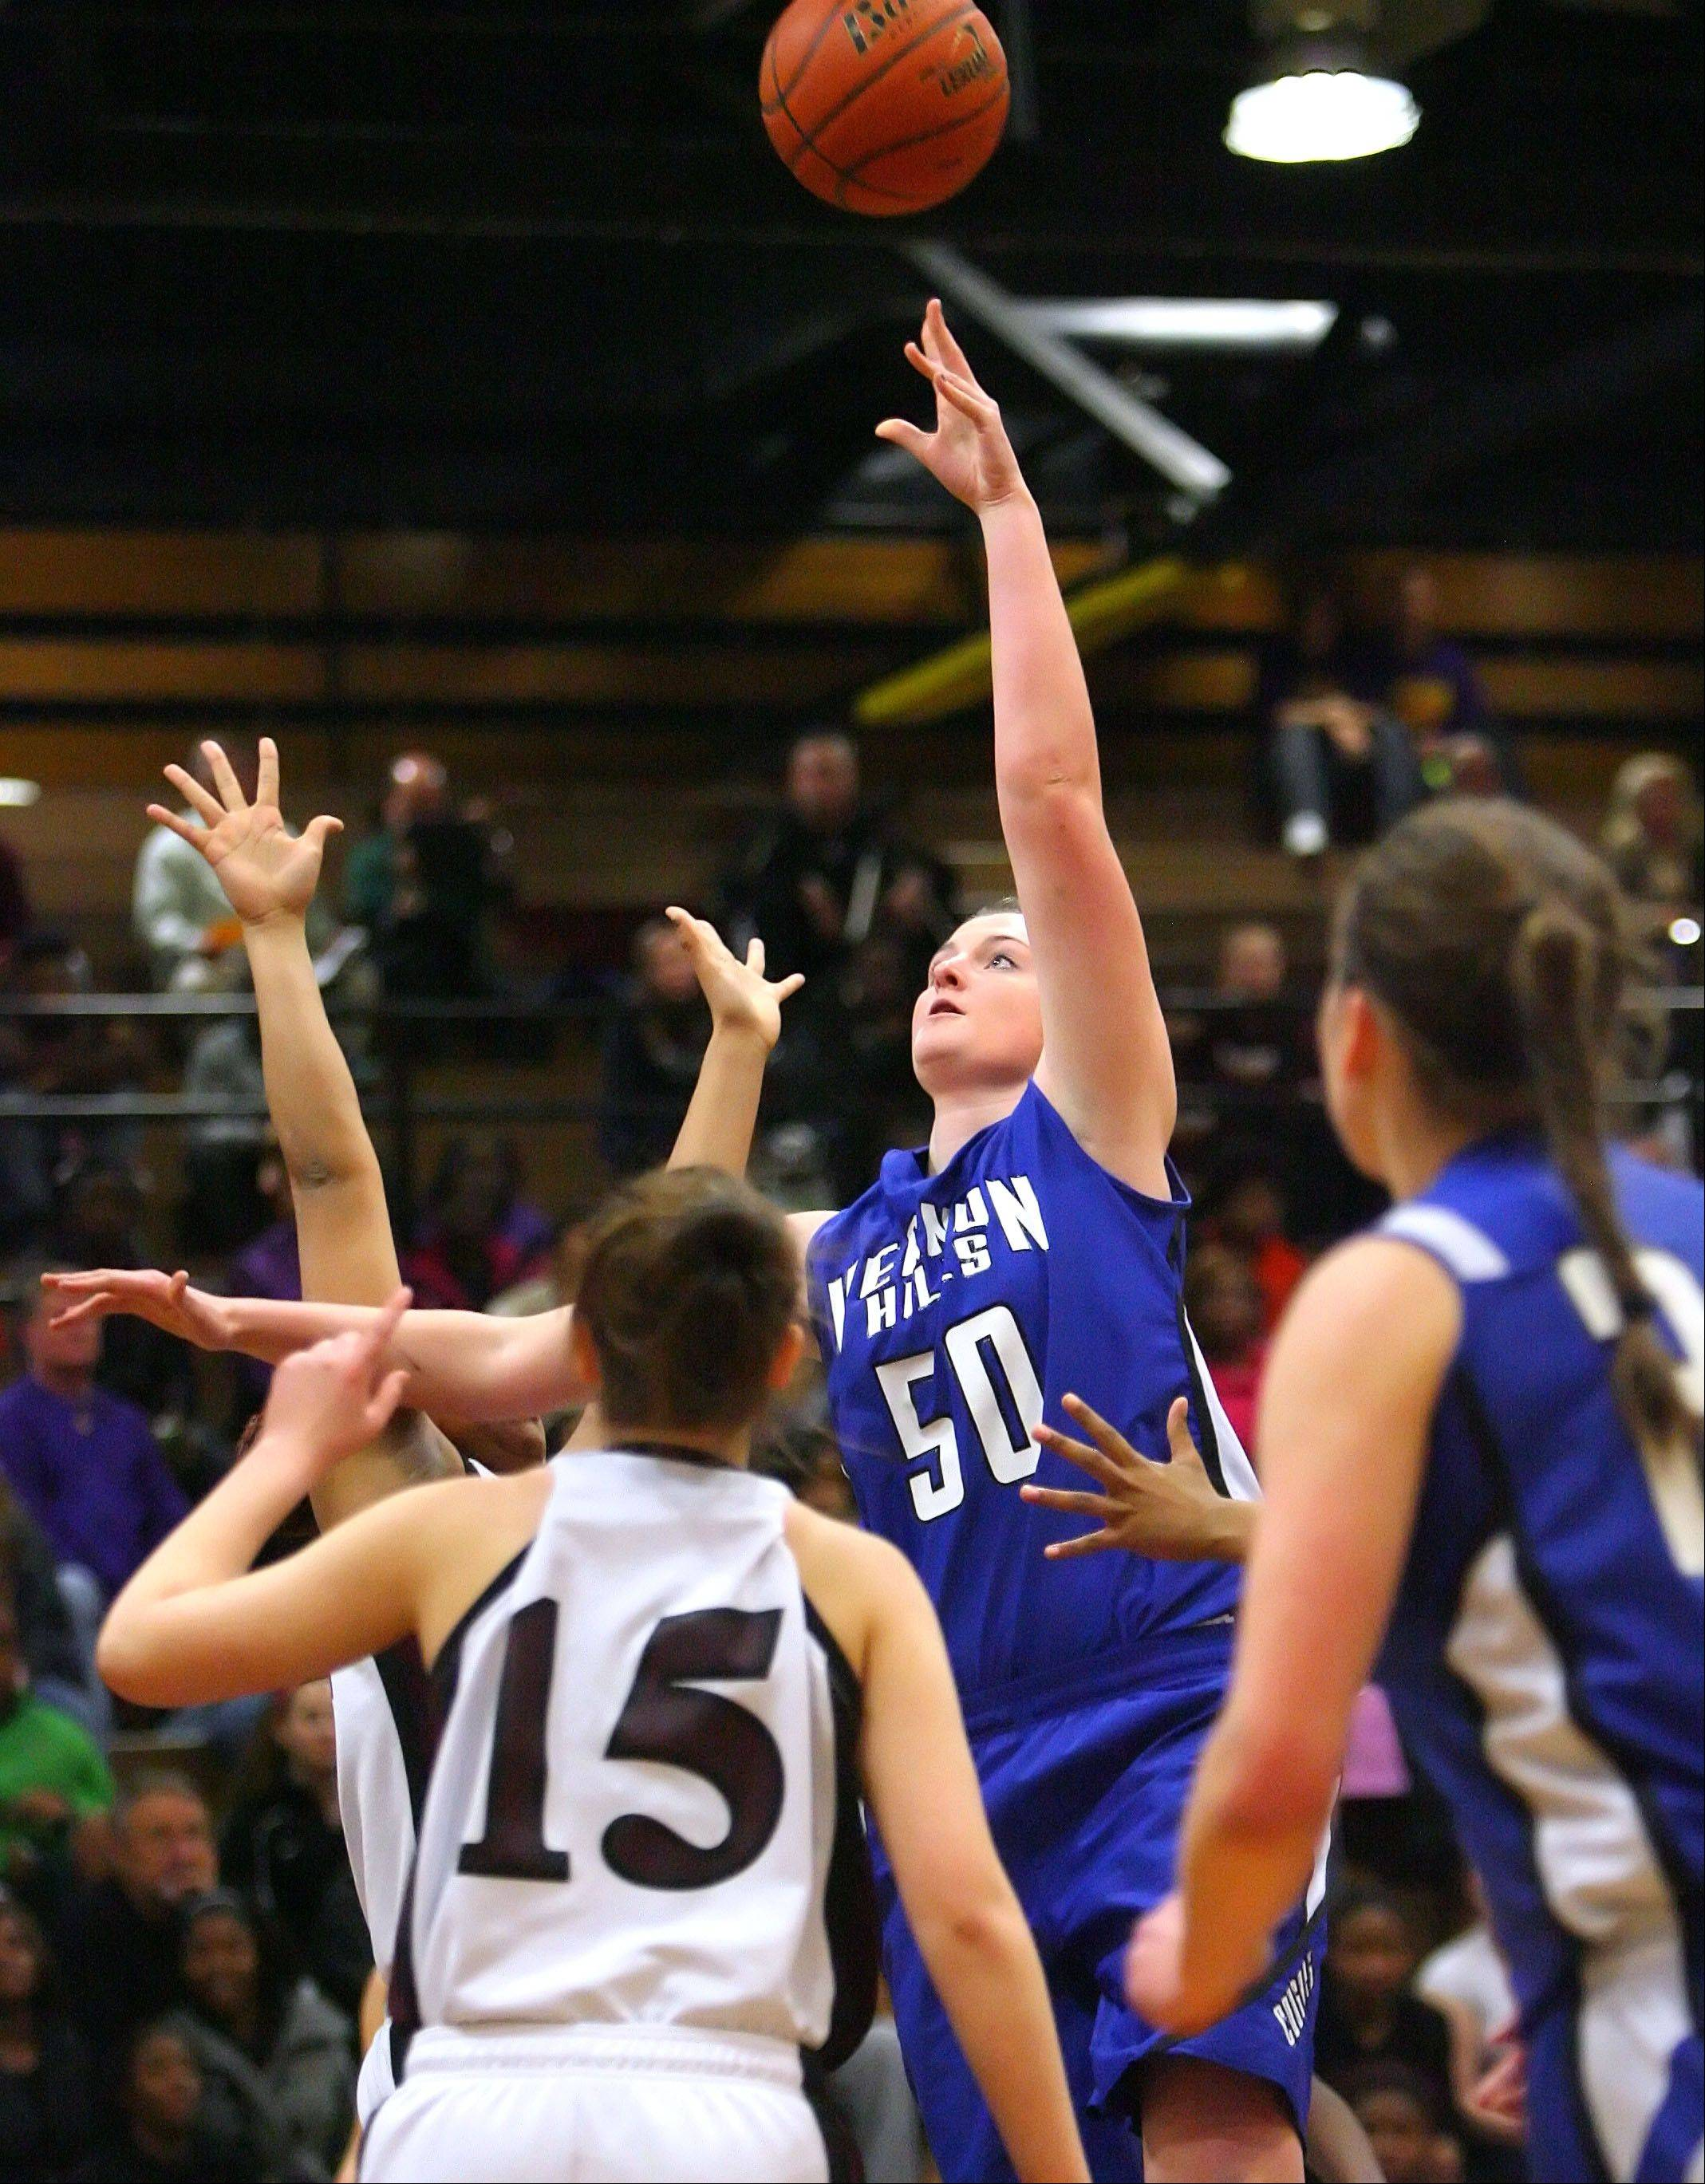 Images from the Vernon Hills at Zion-Benton girls basketball game on Wednesday, Feb. 6 in Zion.